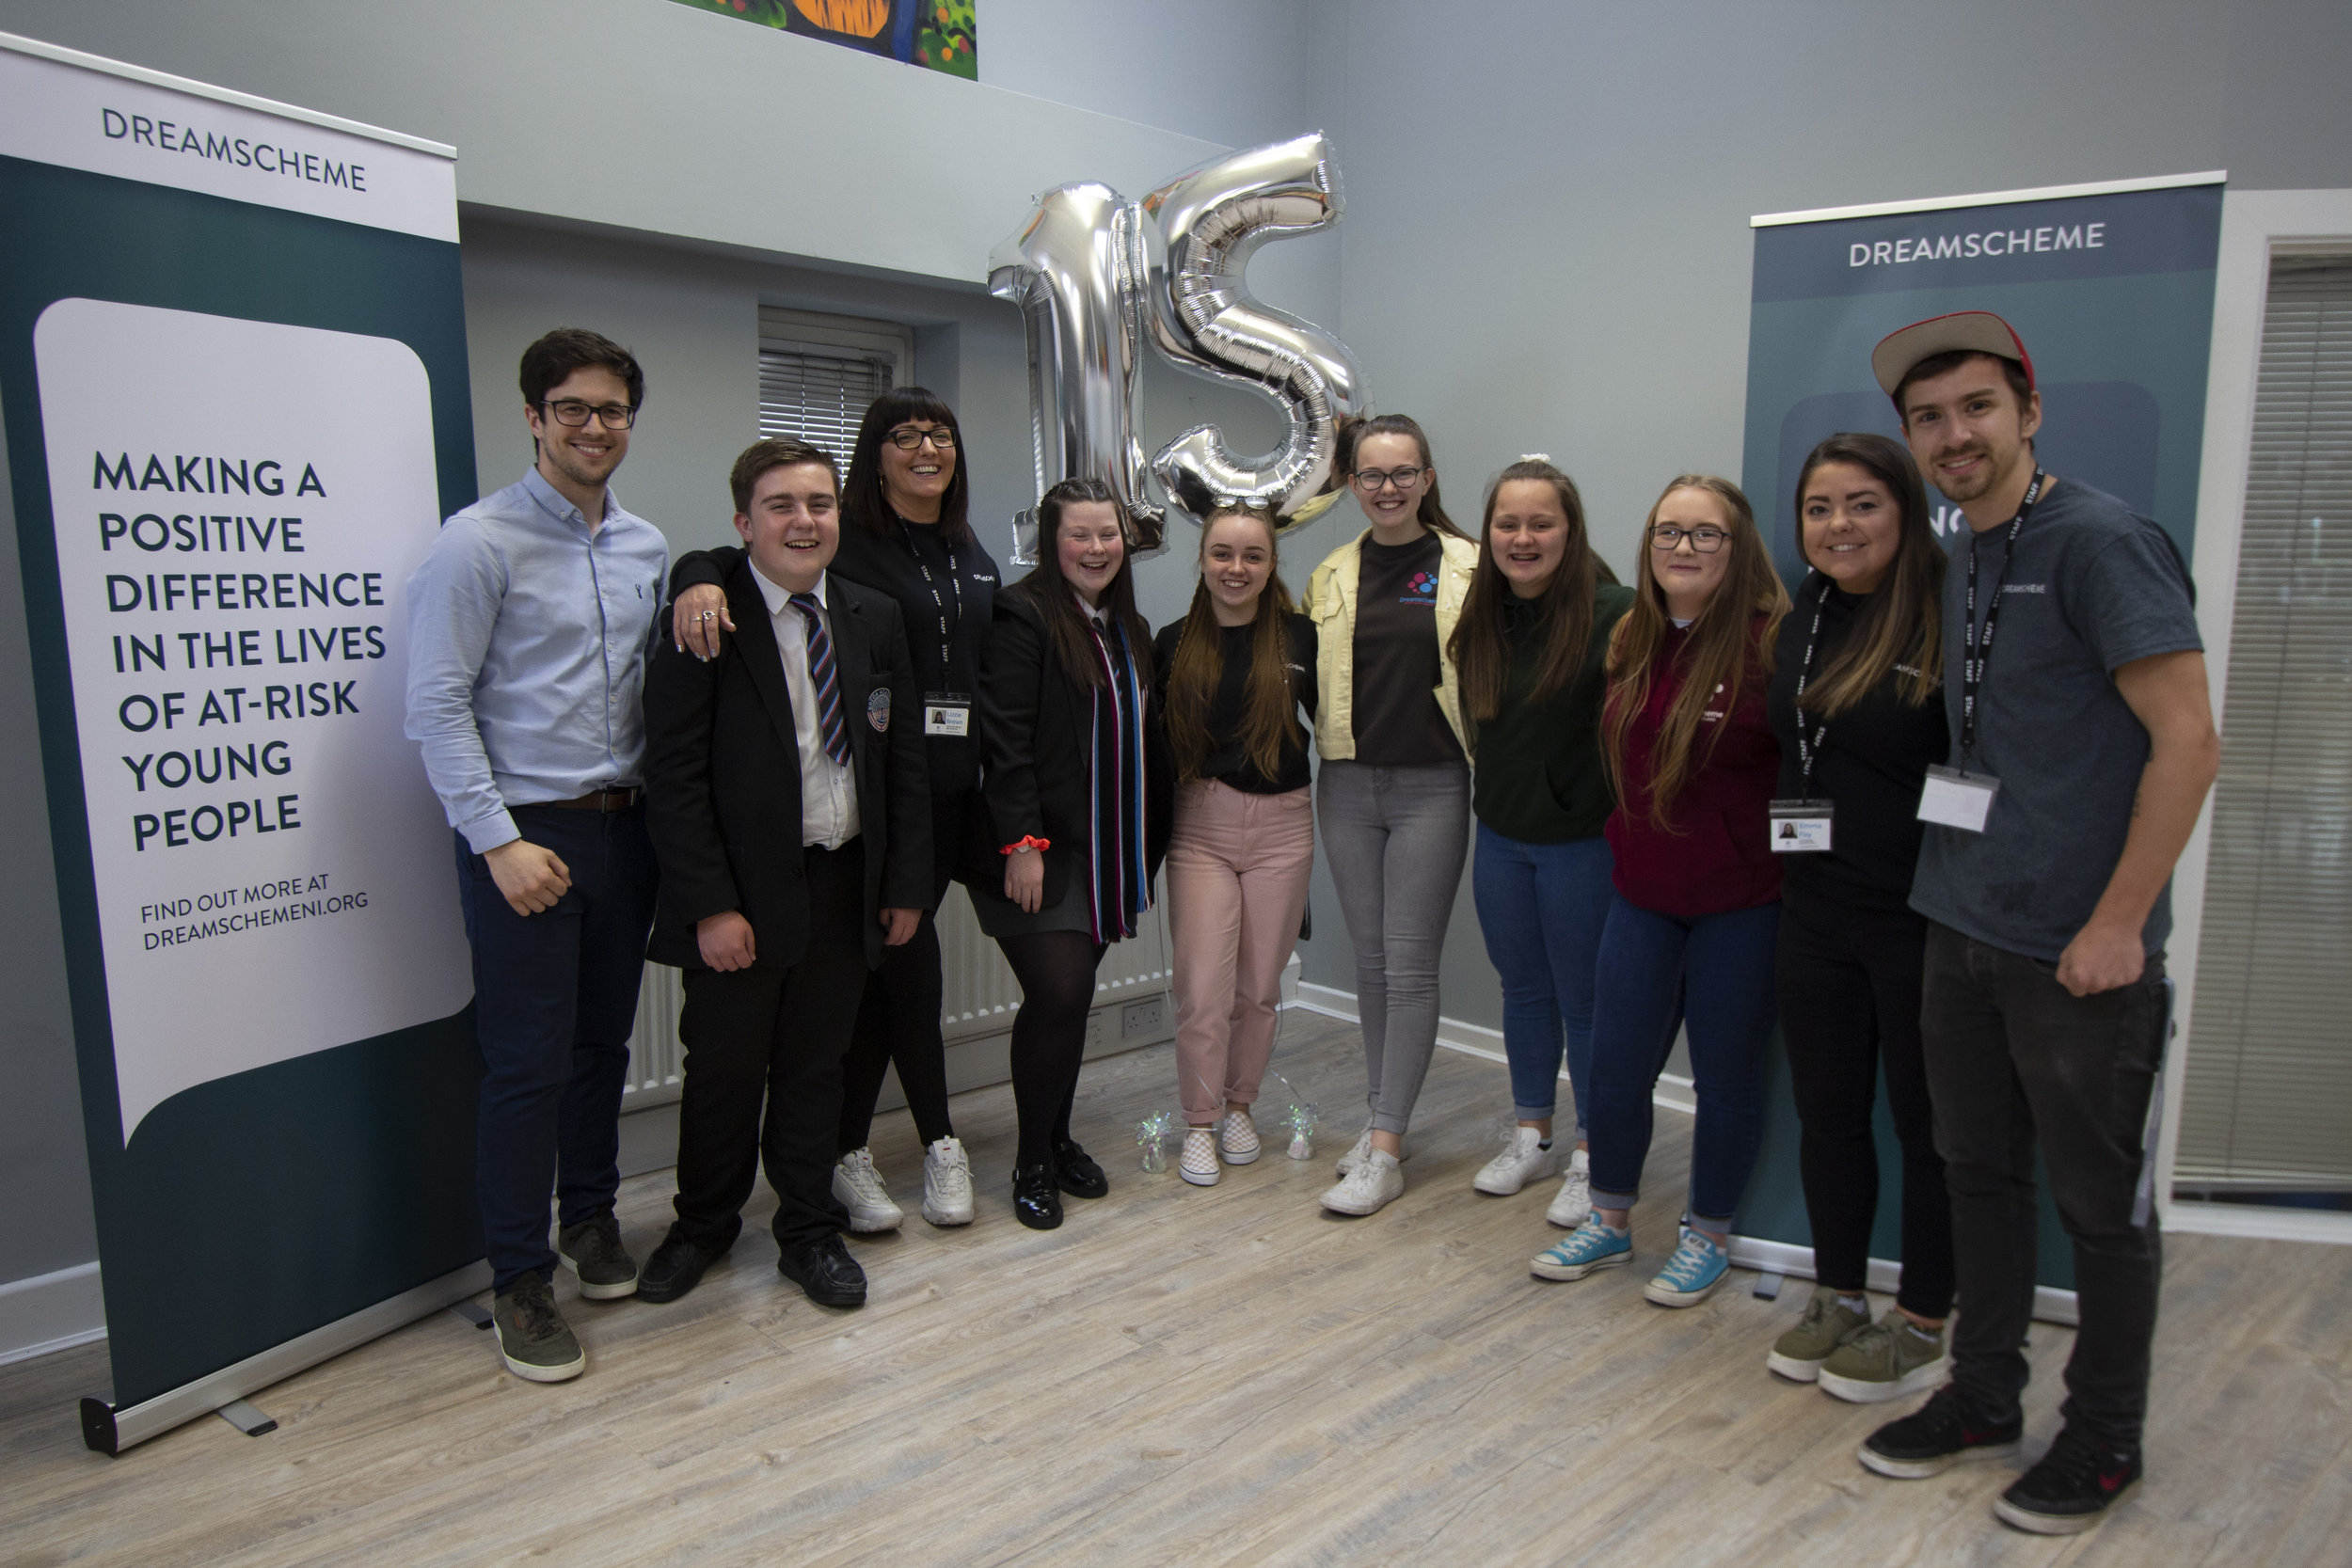 Current and past participants of Dreamscheme with youth workers Lizzie Brown, Emma Foy, Stephen McCombe and chief executive Stephen Mullan.